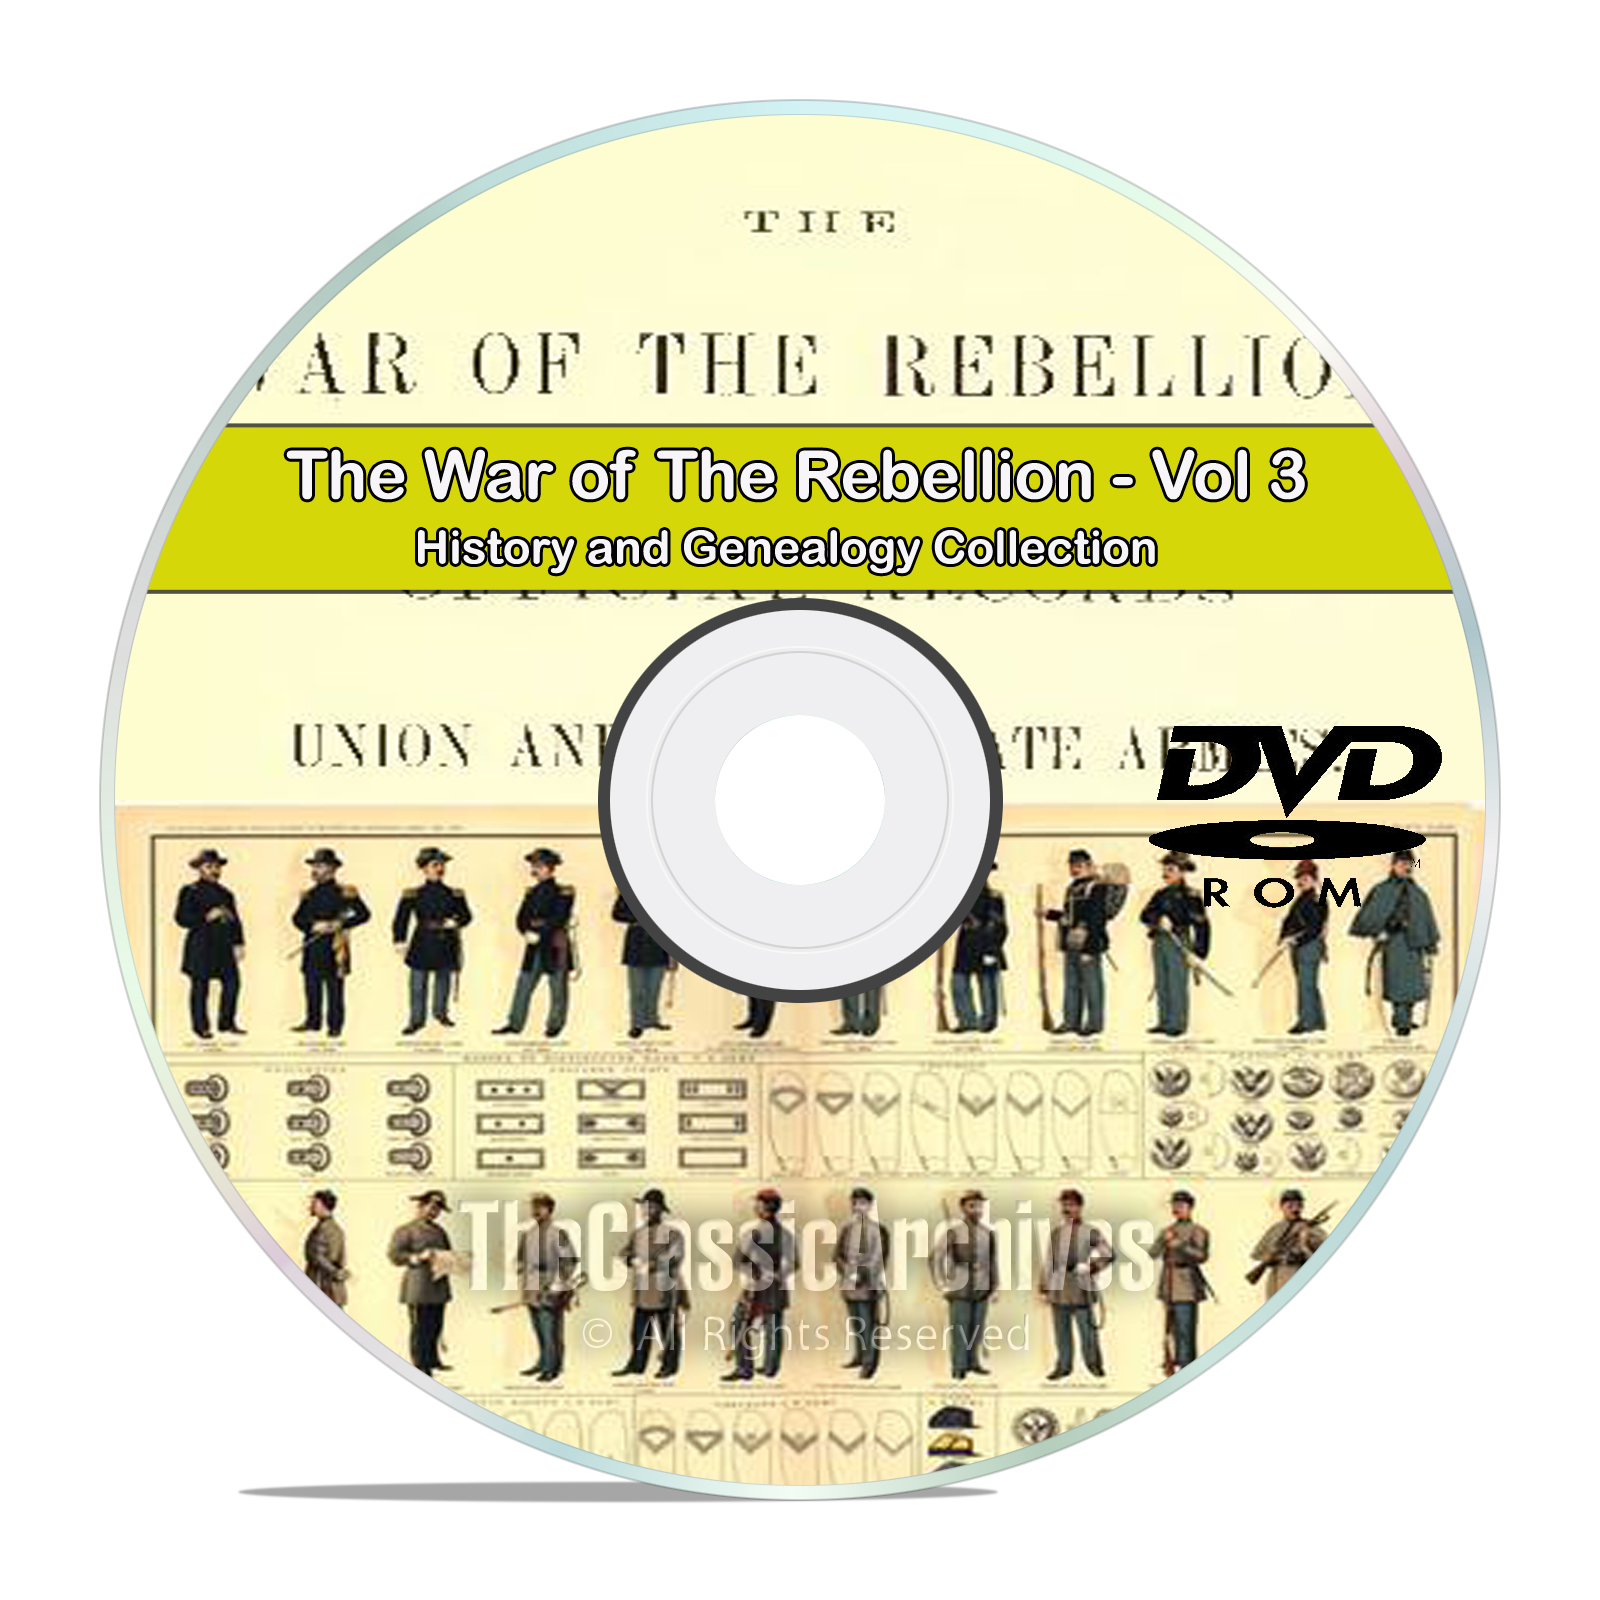 The Civil War of the Rebellion, Records, Atlas History Books Volume 3 DVD